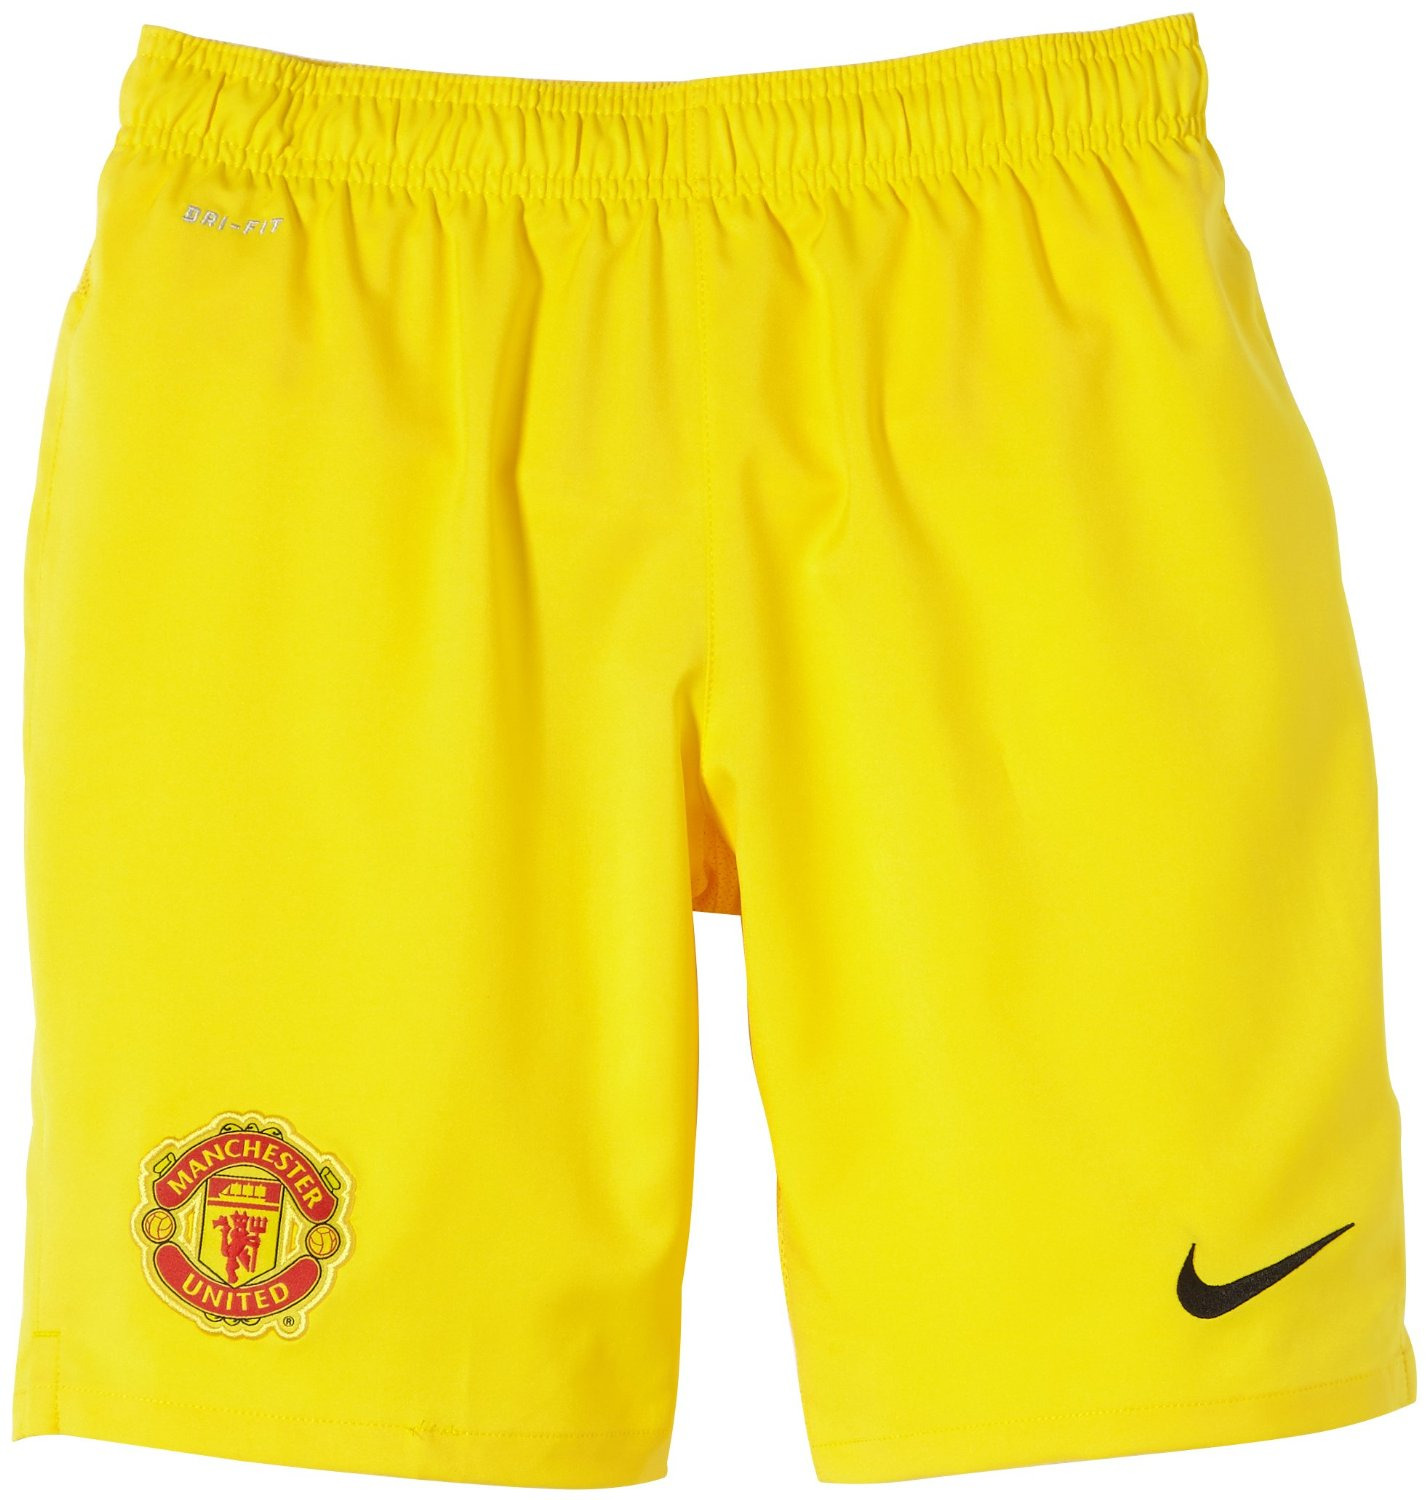 7d3fca126bab6 Cheap Nike Kids Shorts, find Nike Kids Shorts deals on line at ...